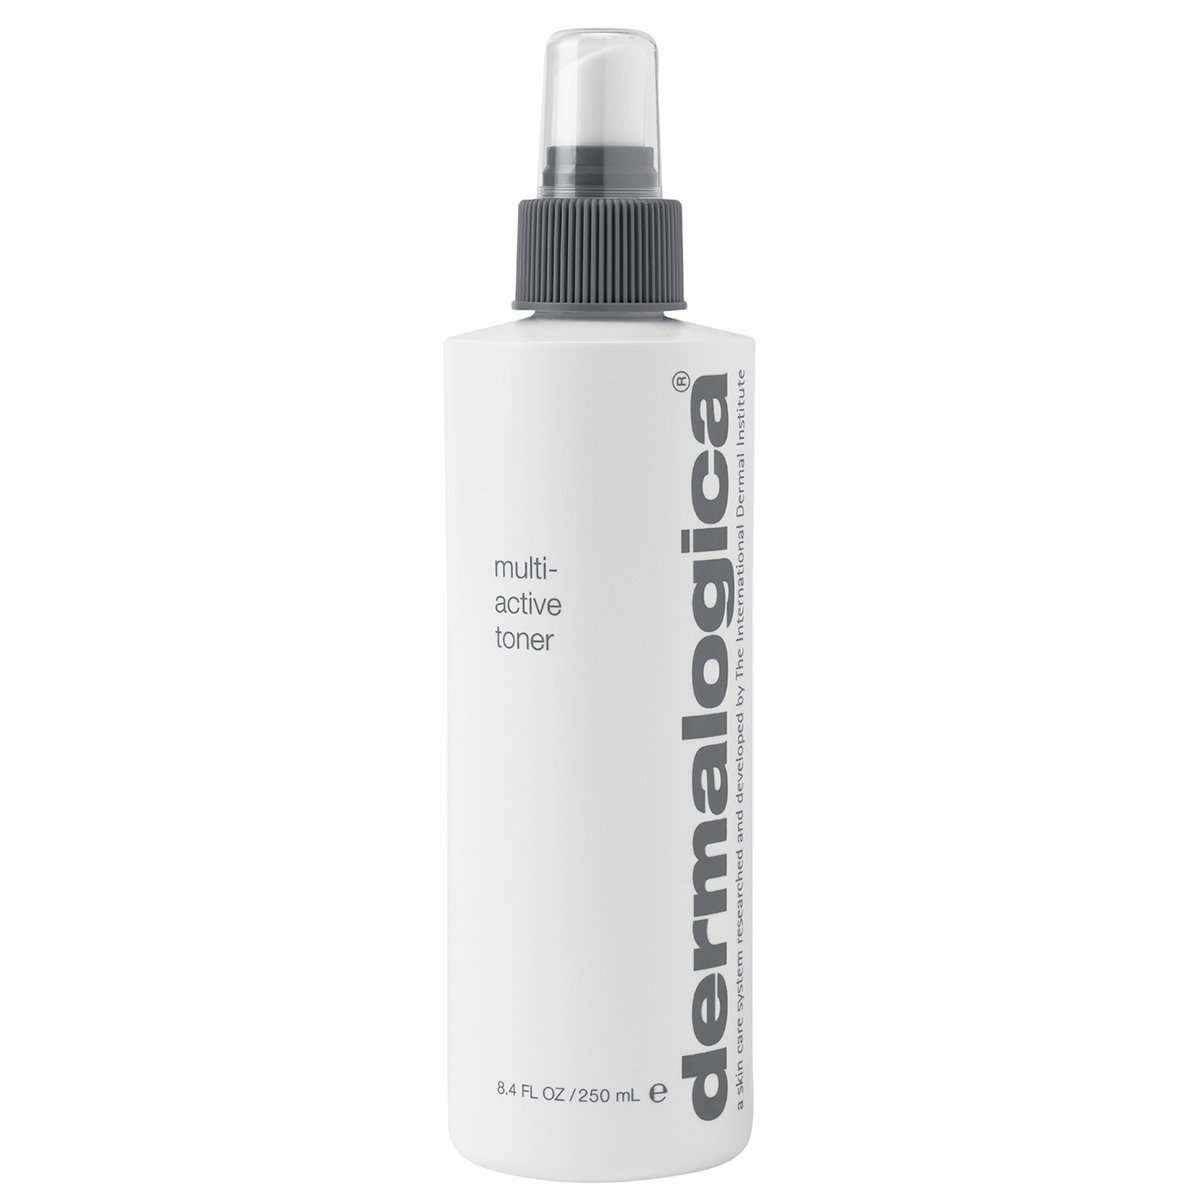 dermalogica - Multi-Active Toner 250 ml